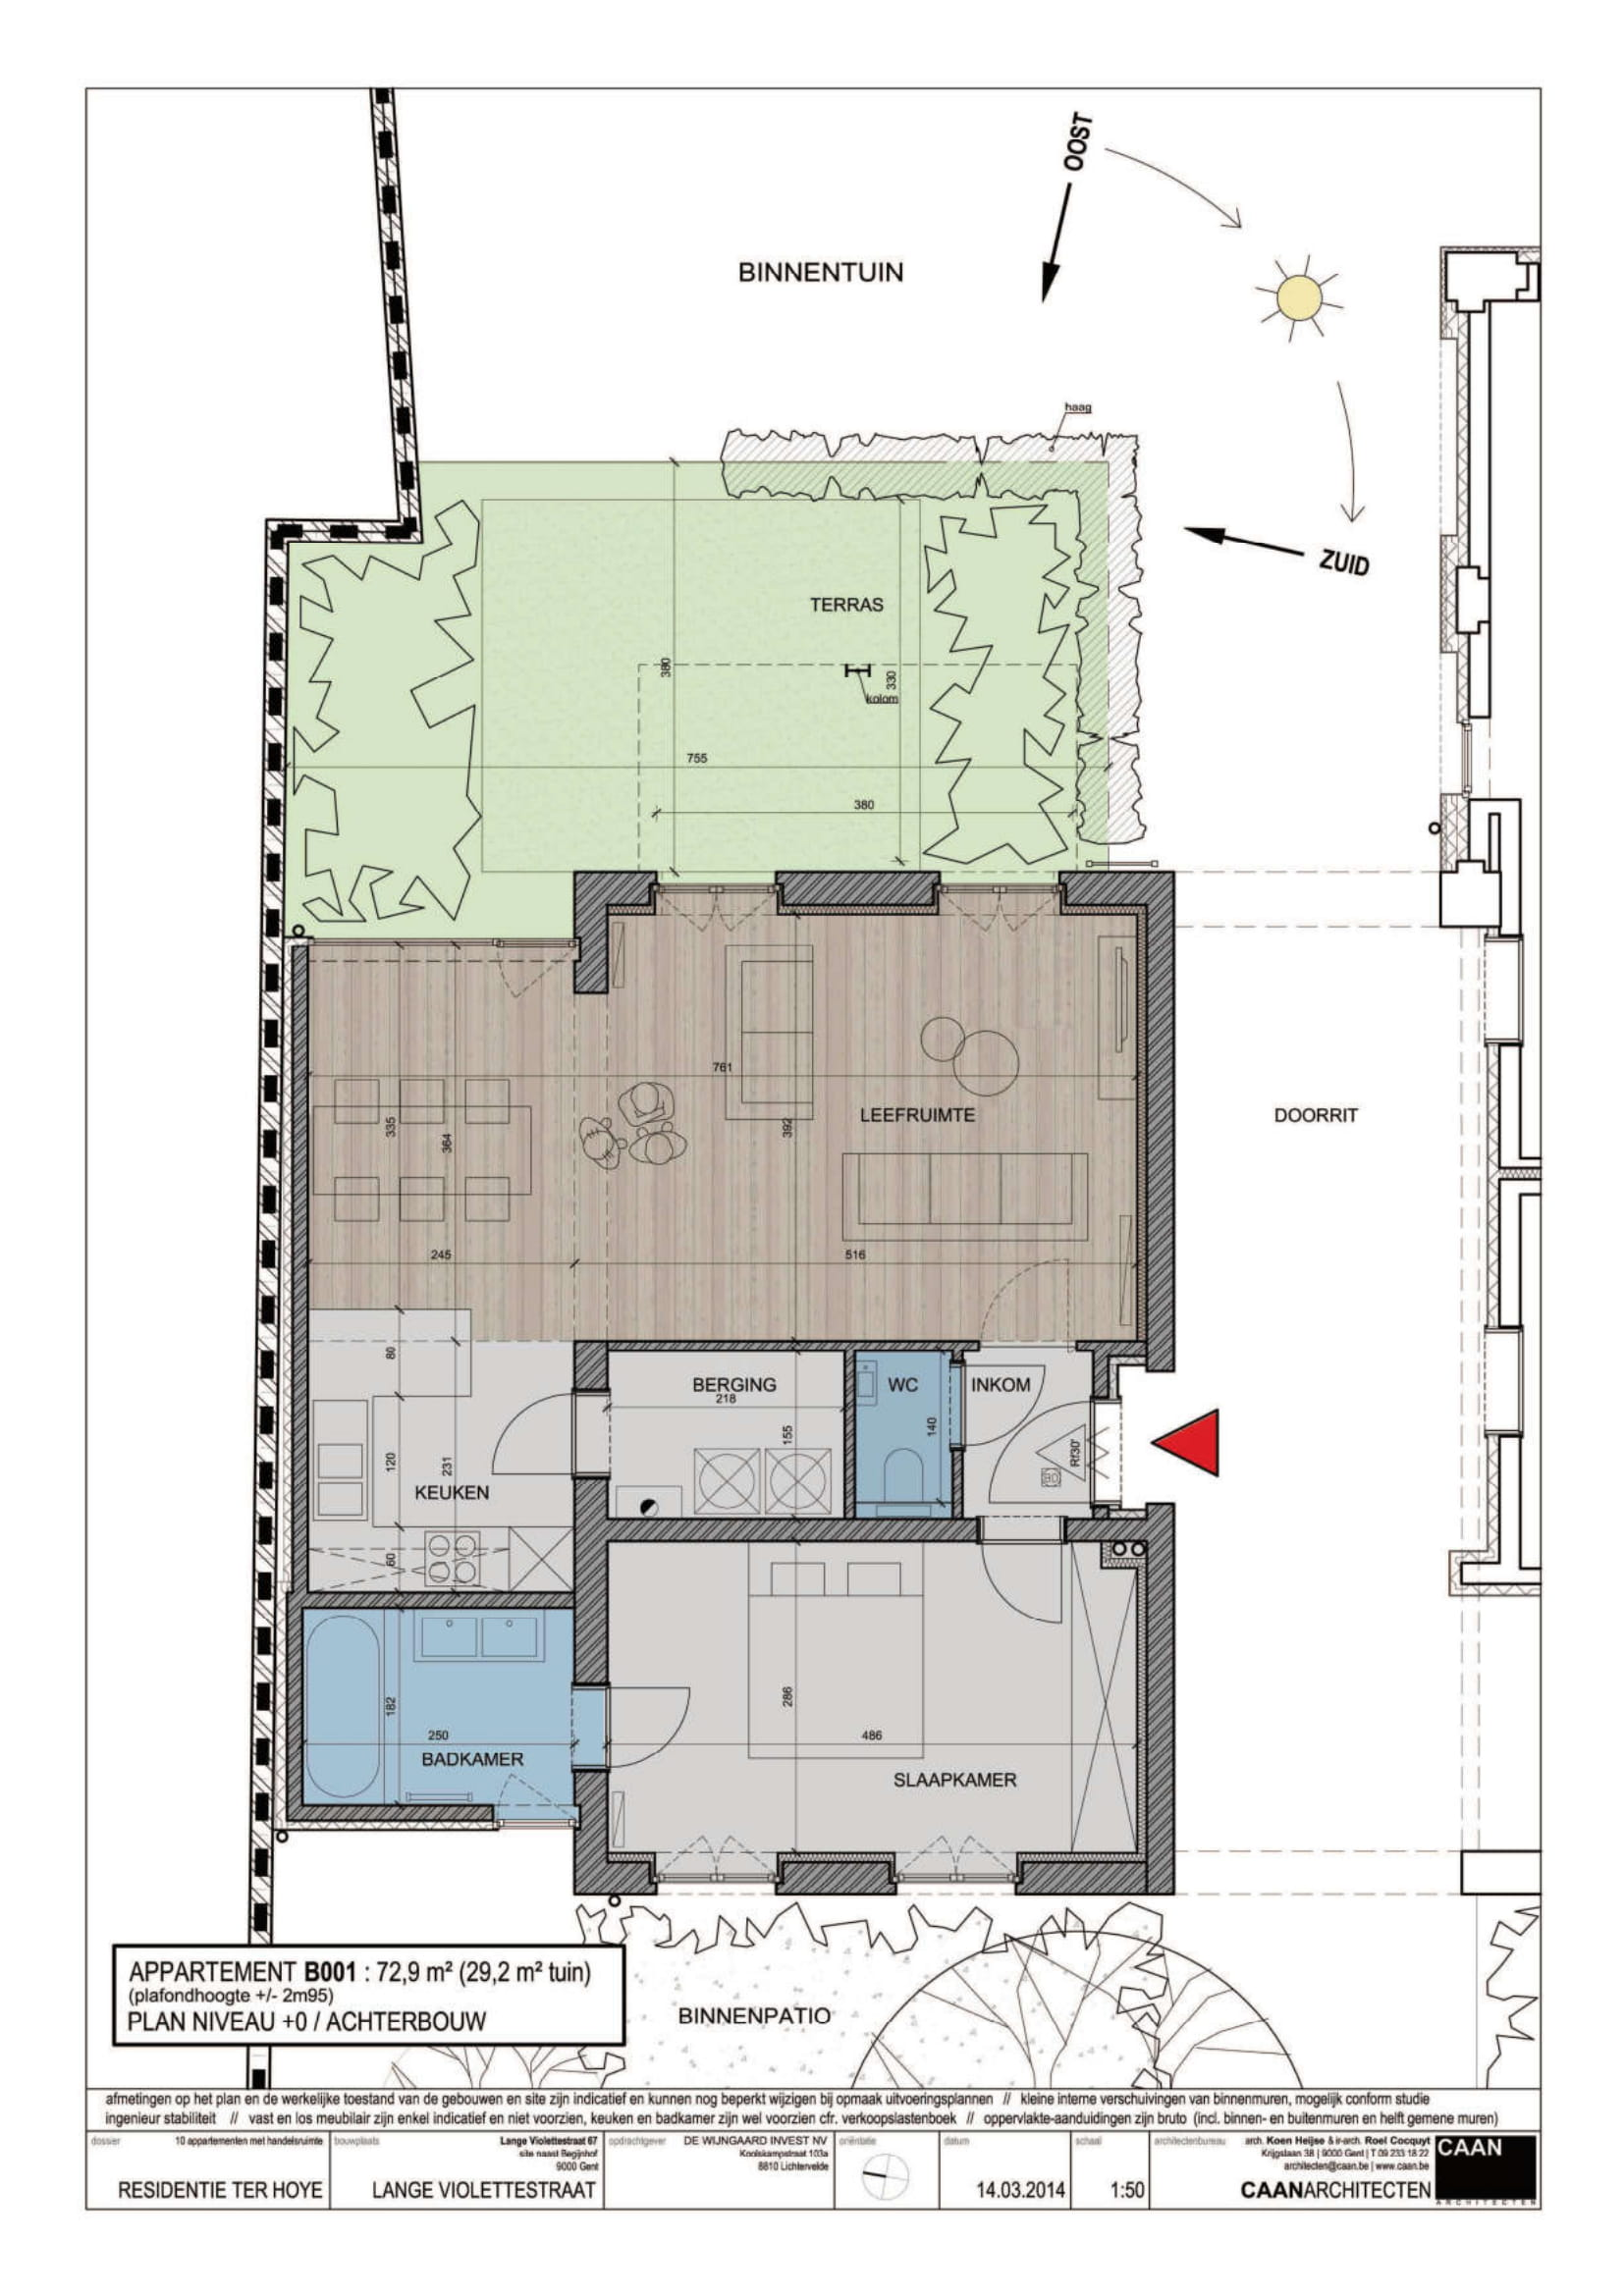 furnished business apartment B001 layout